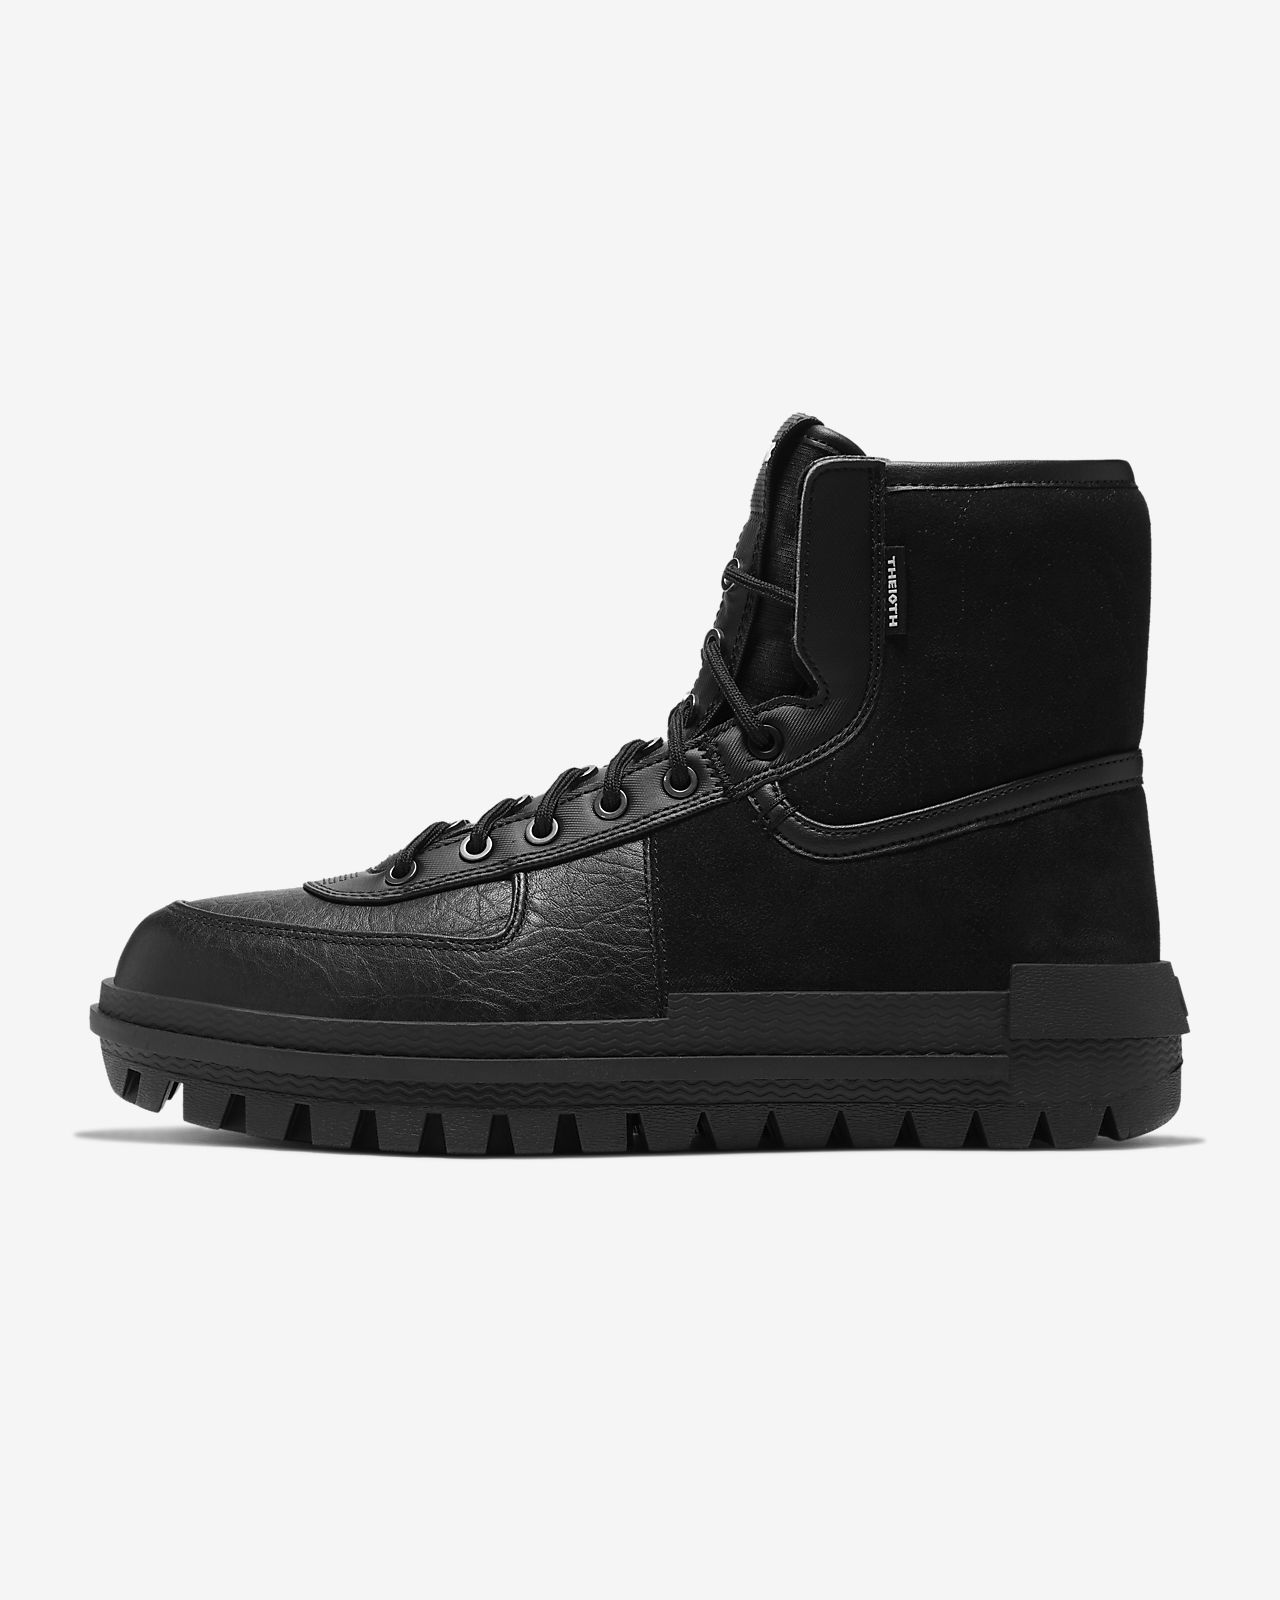 The Nike Special Field Air Force 1 In Triple Black Is Coming